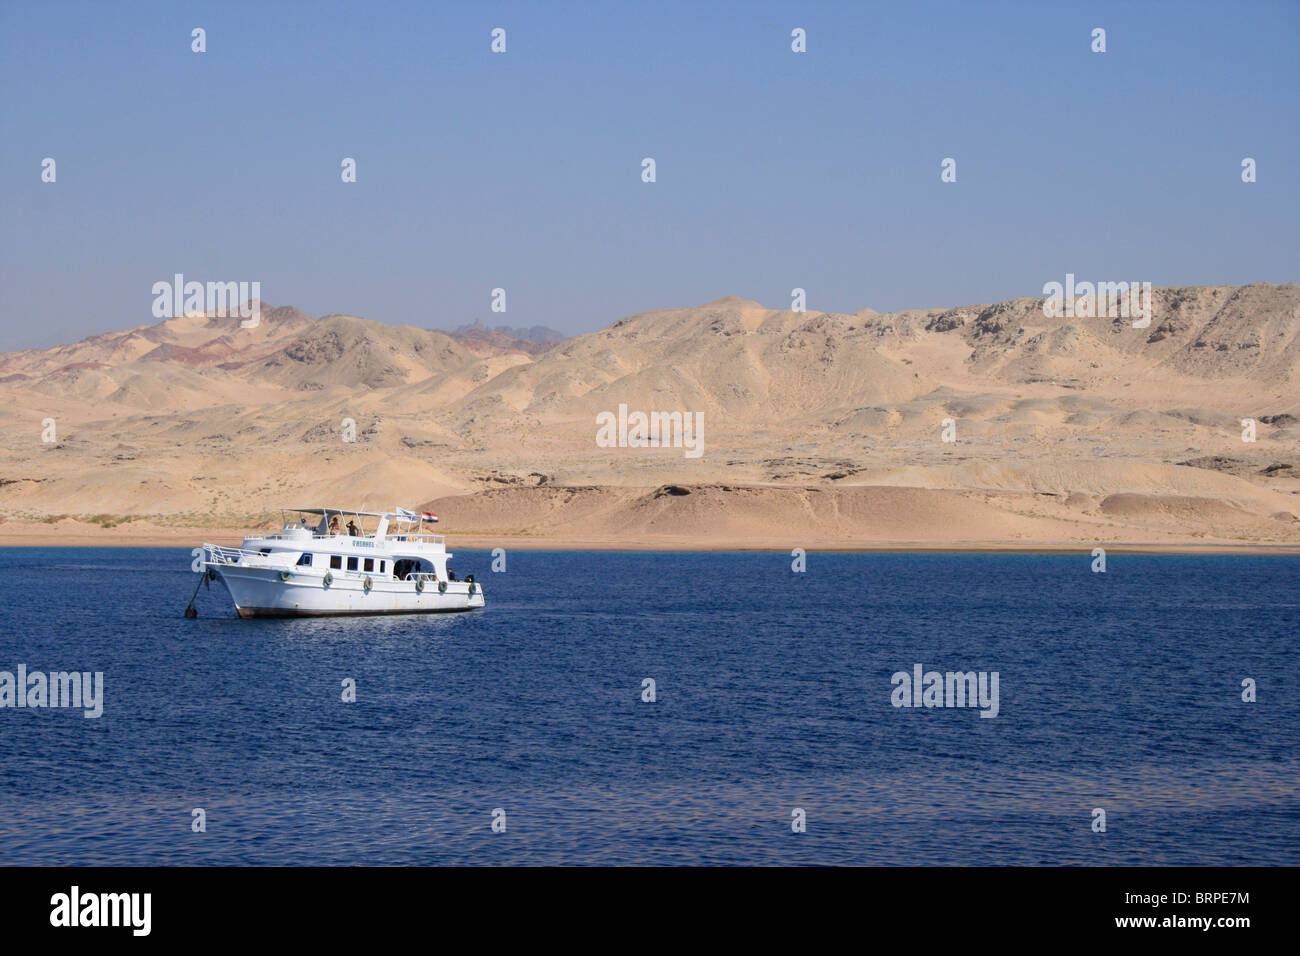 A diving boat anchored in Ras Mohammed National Marine Park near Sharm el Sheikh - Stock Image